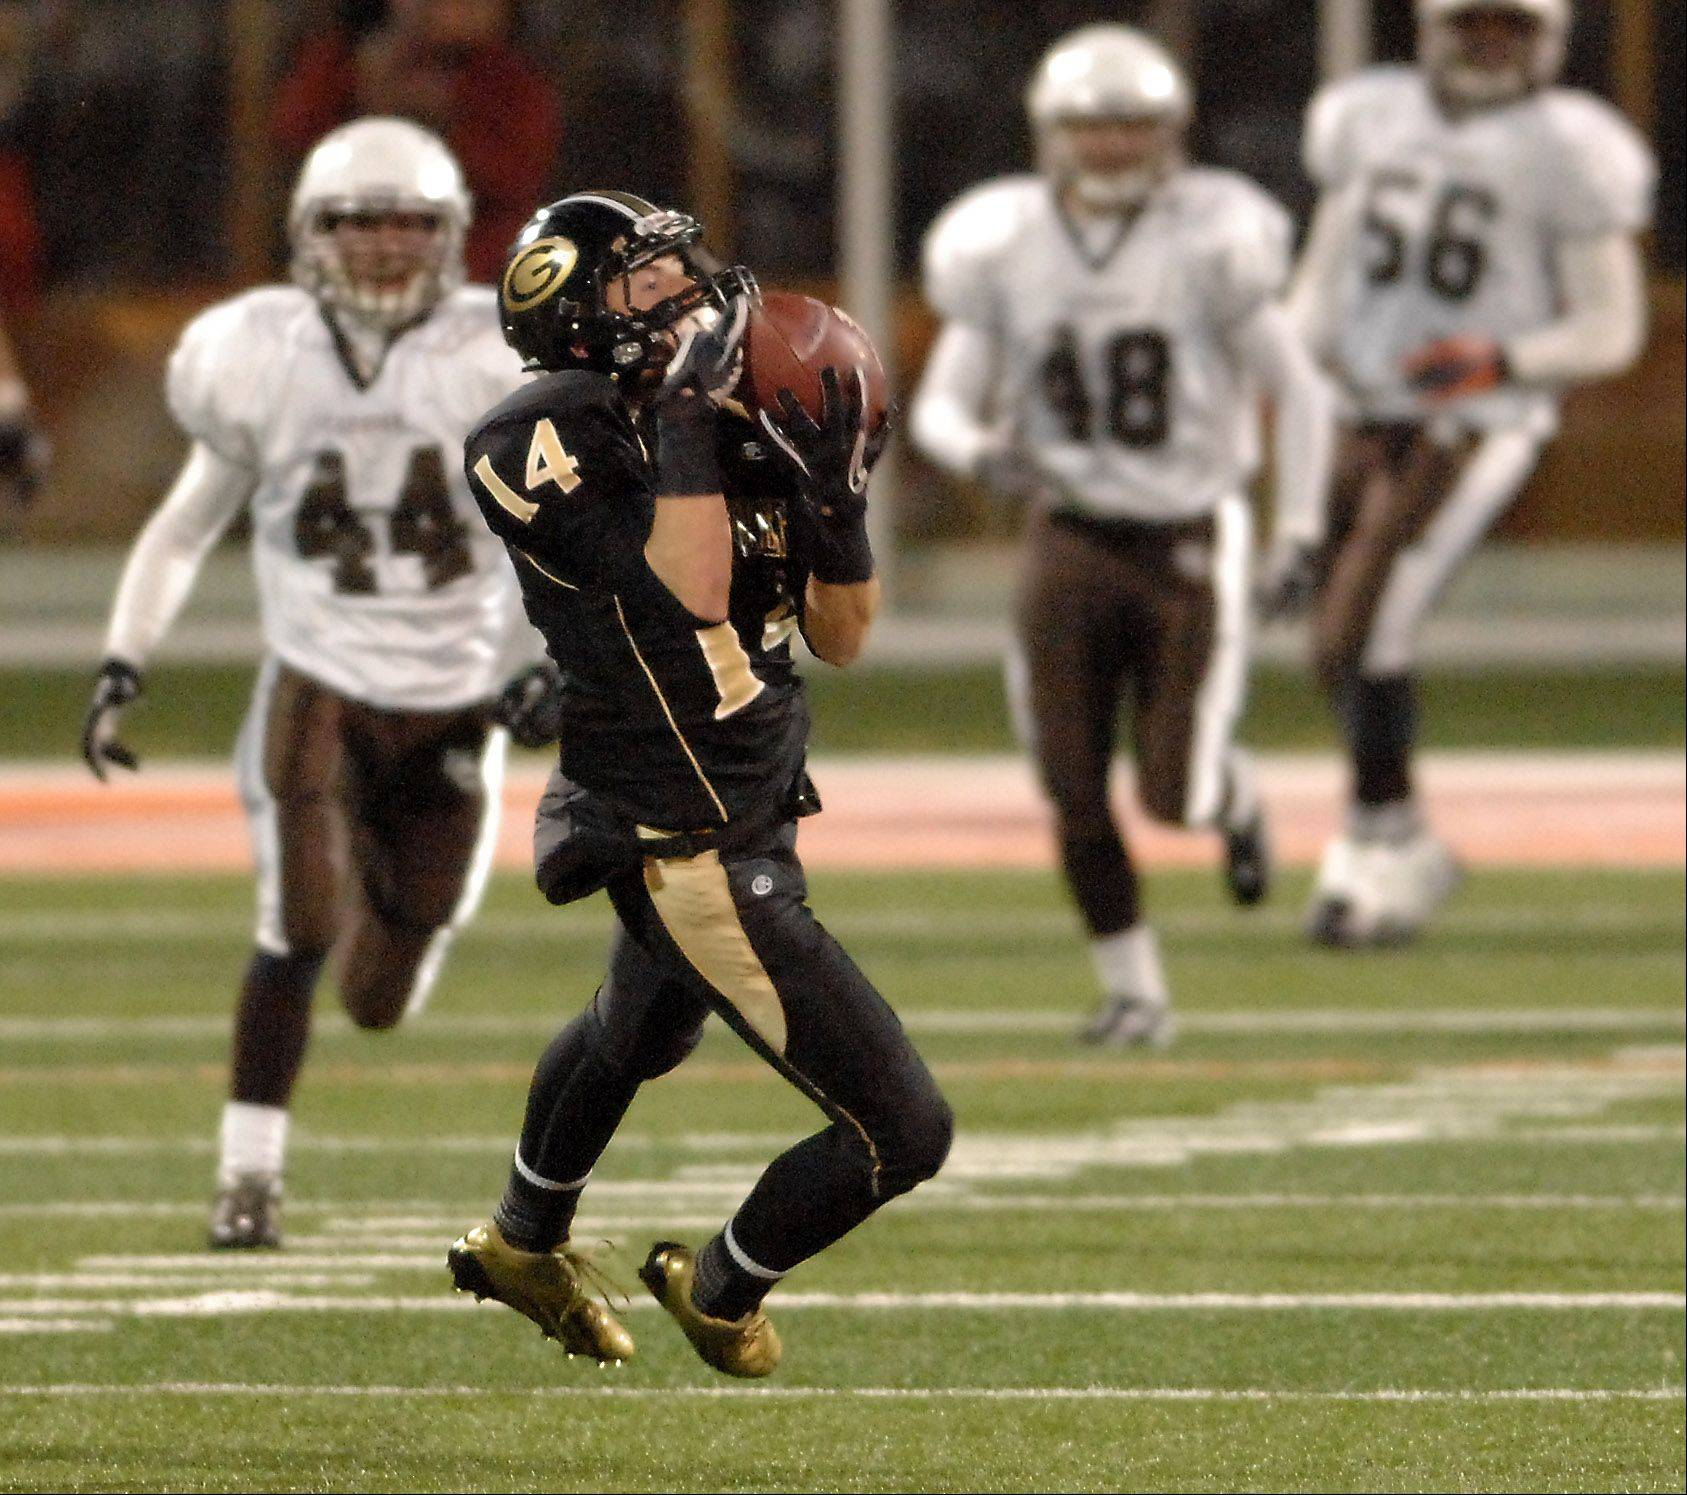 Glenbard North's Ryan Storto hauls in a catch during Saturday's Class 8A state title game at Memorial Stadium in Champaign.